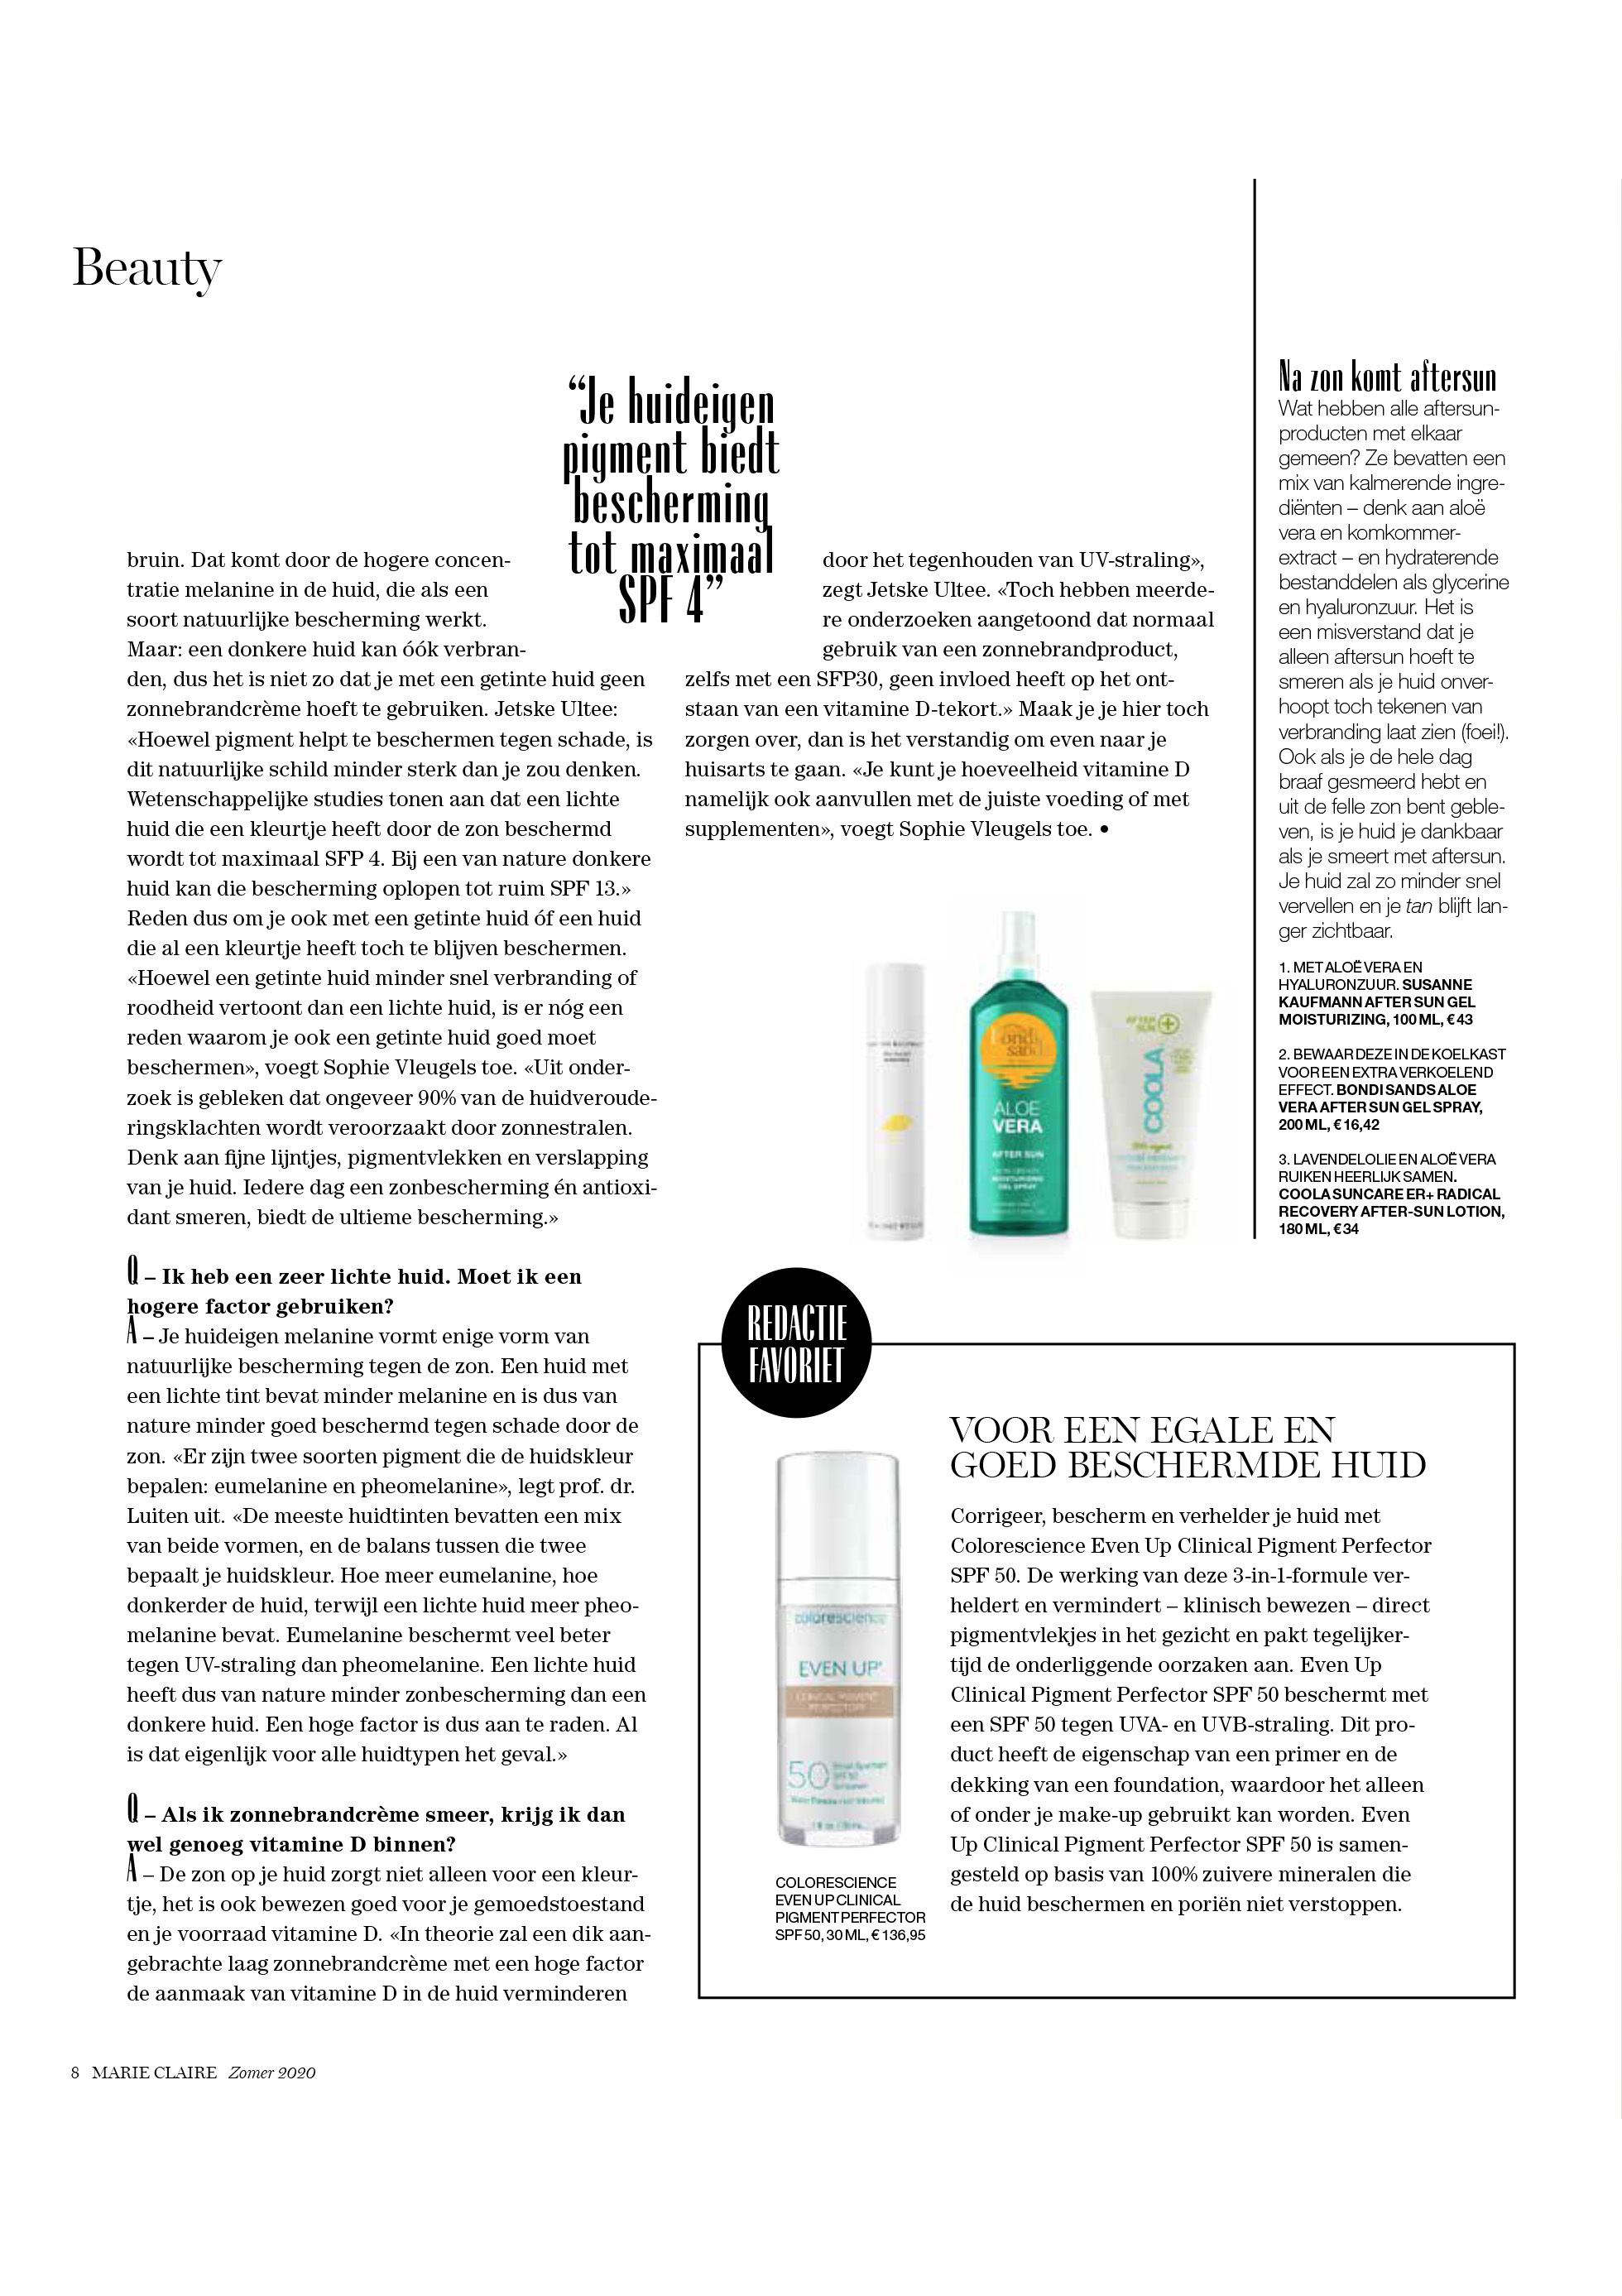 Colorescience in Marie Claire